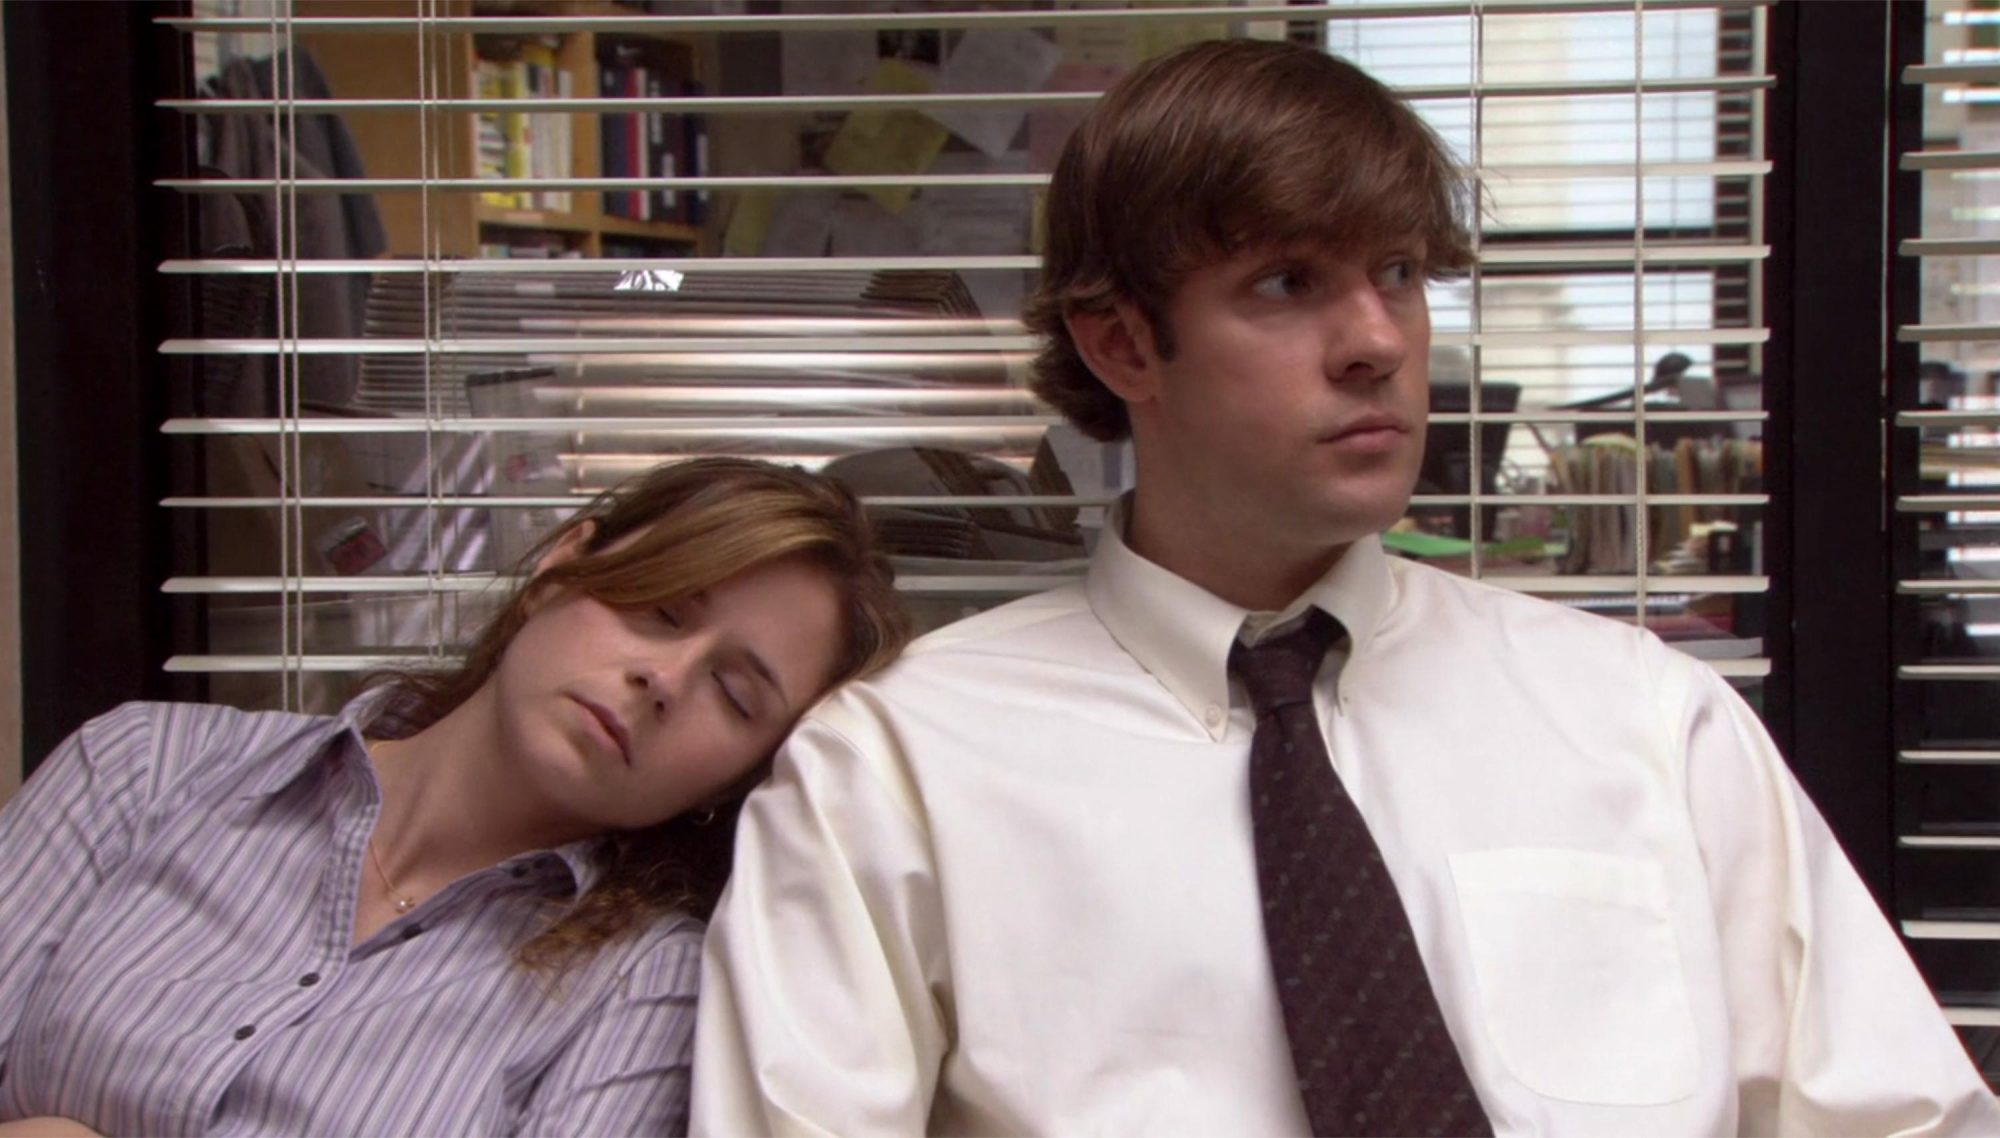 The Office screen grab